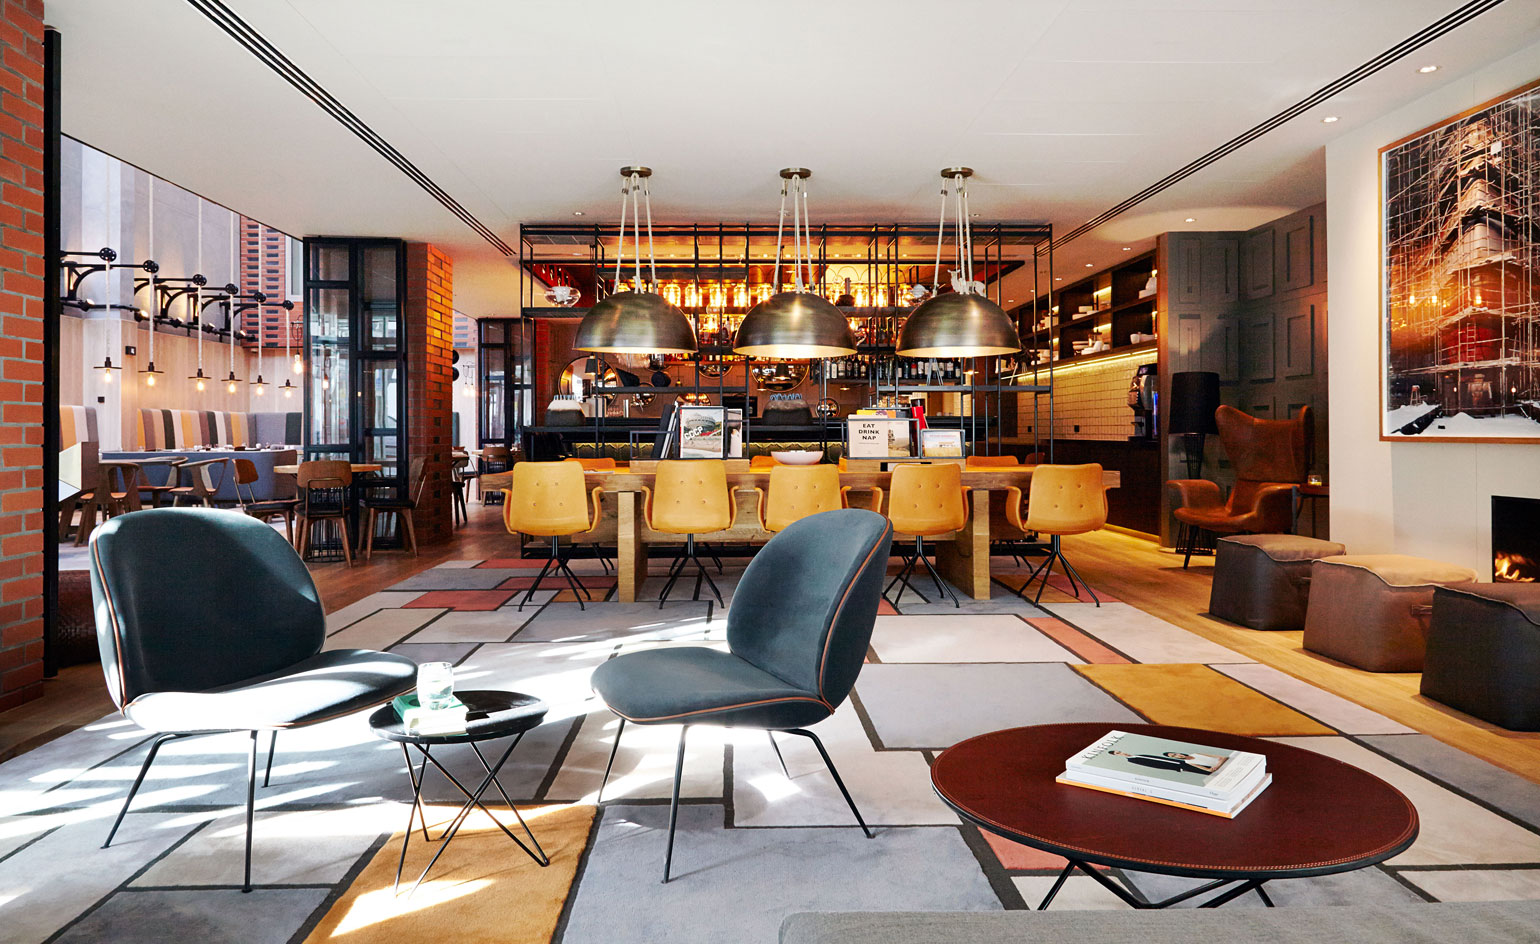 Introducing the puro hotel in gdansk poland design father